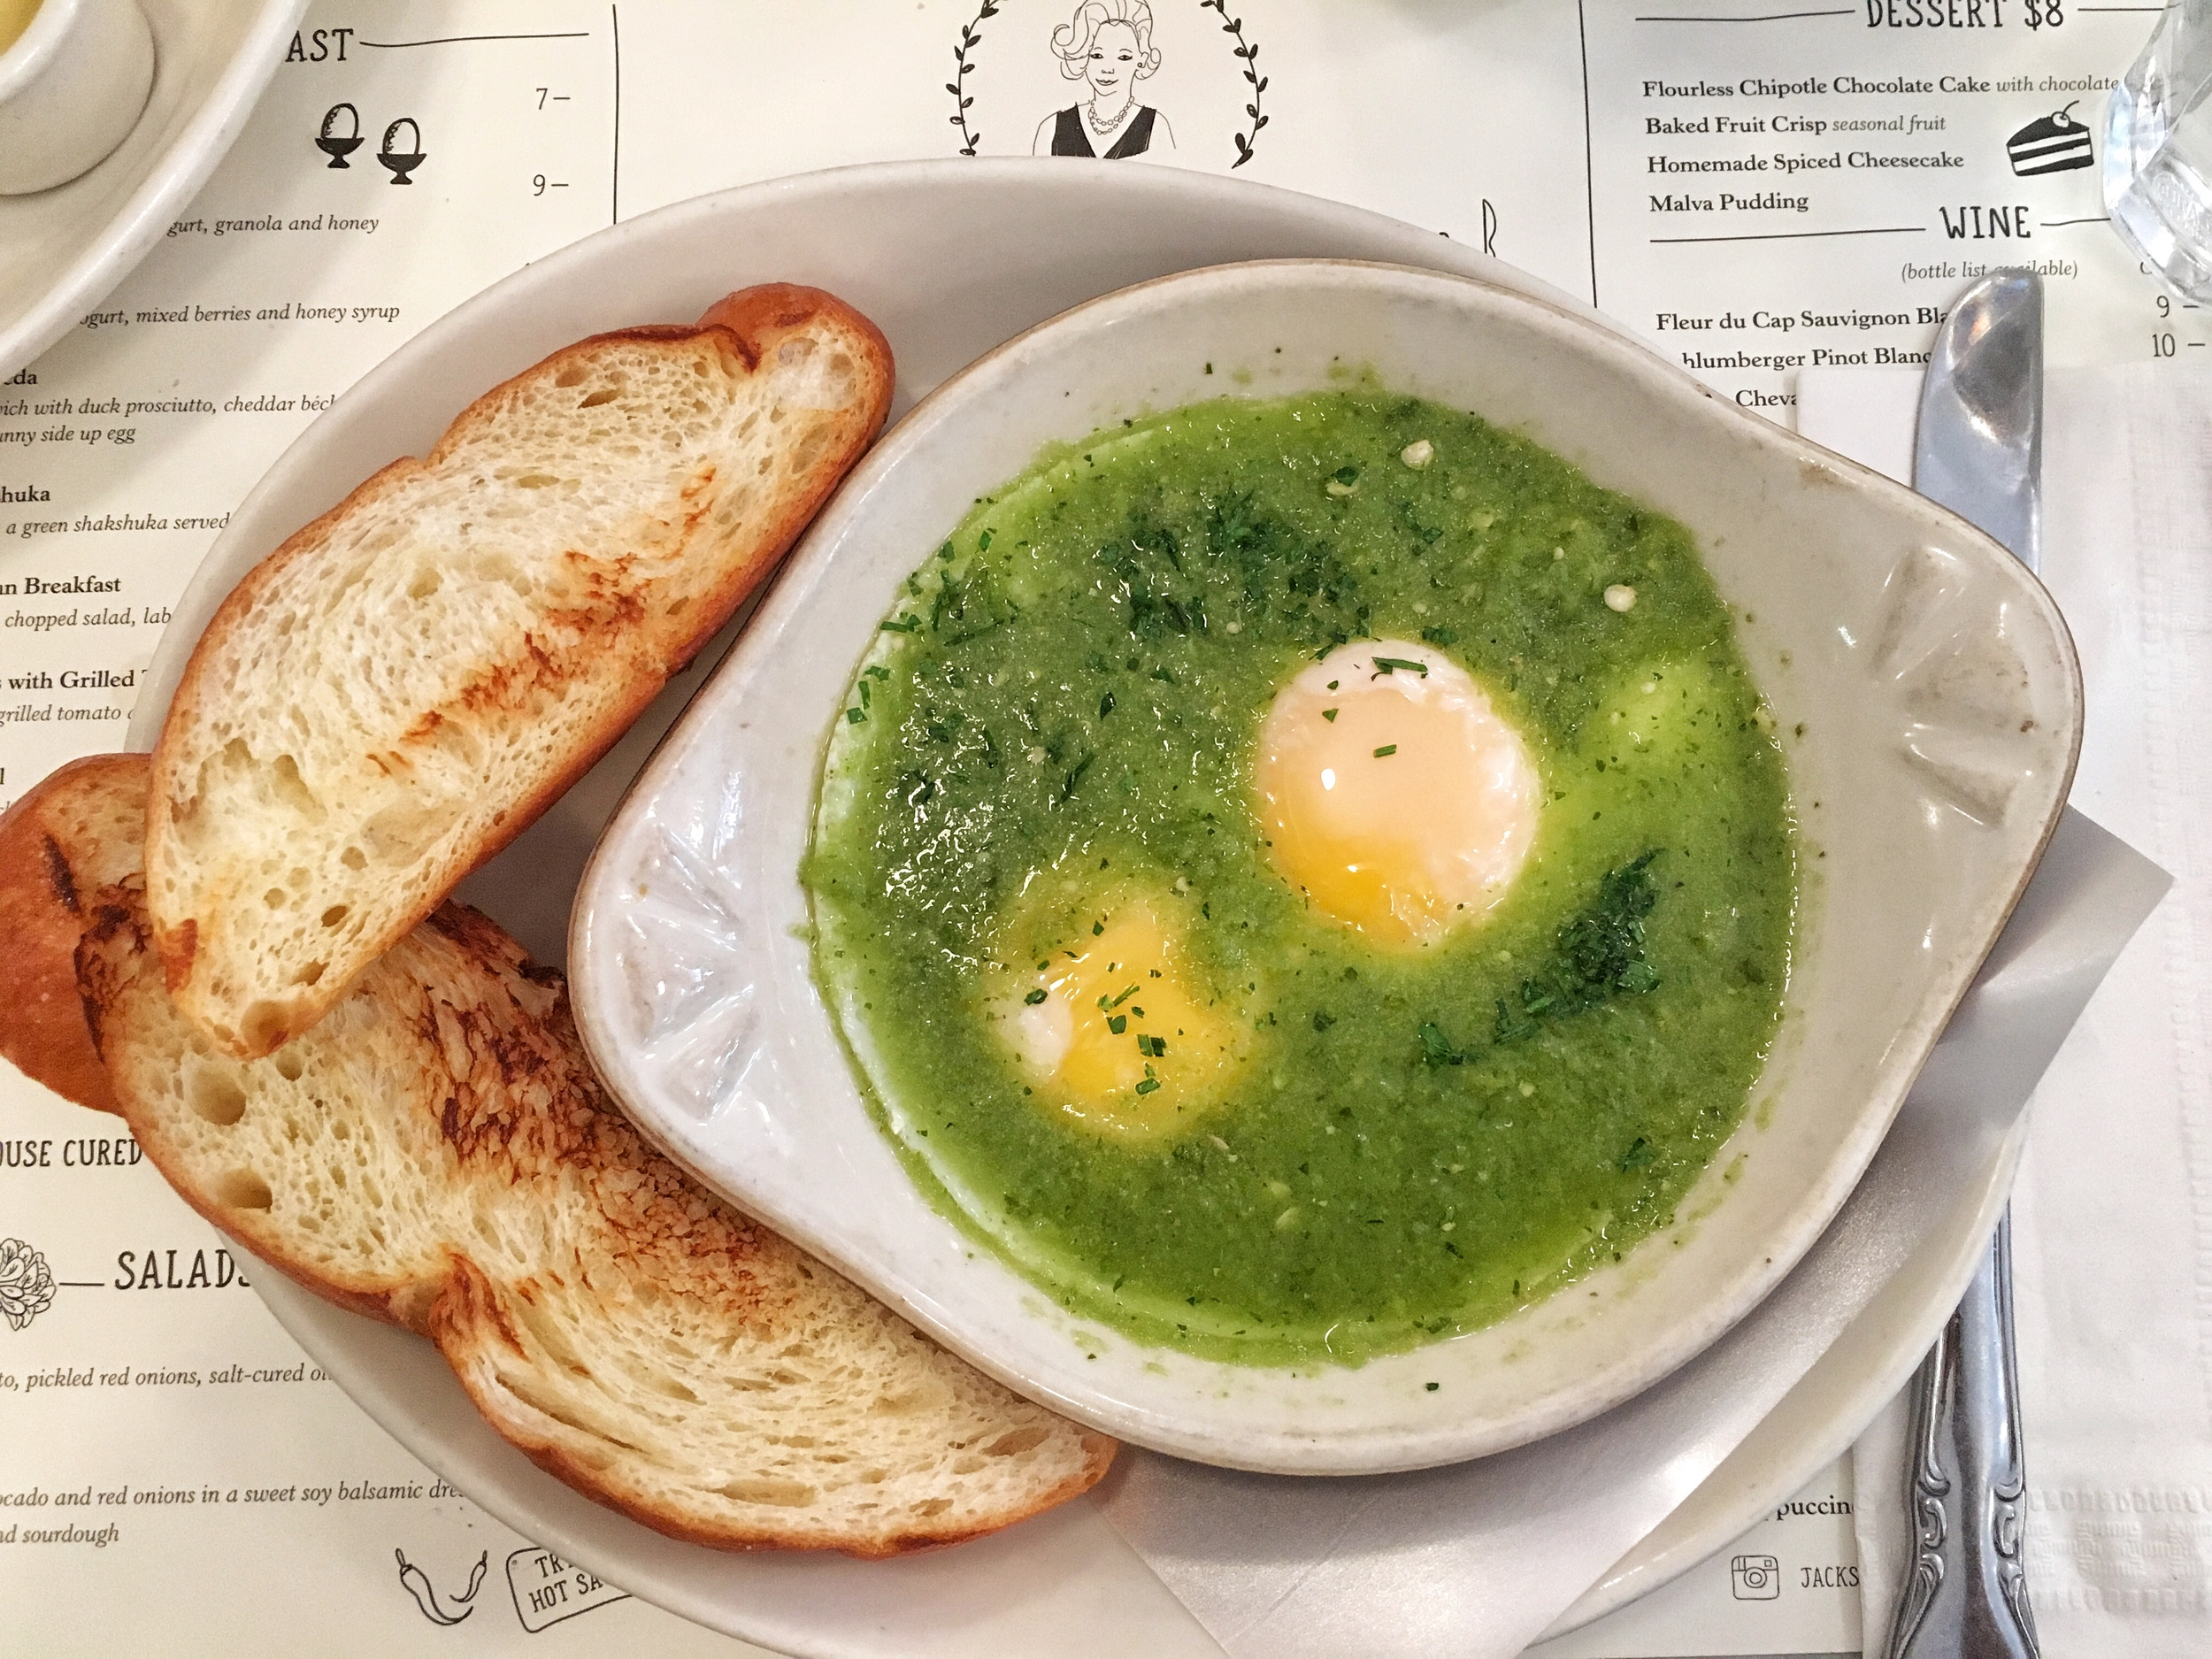 Green shakshuka with two poached eggs and challah bread